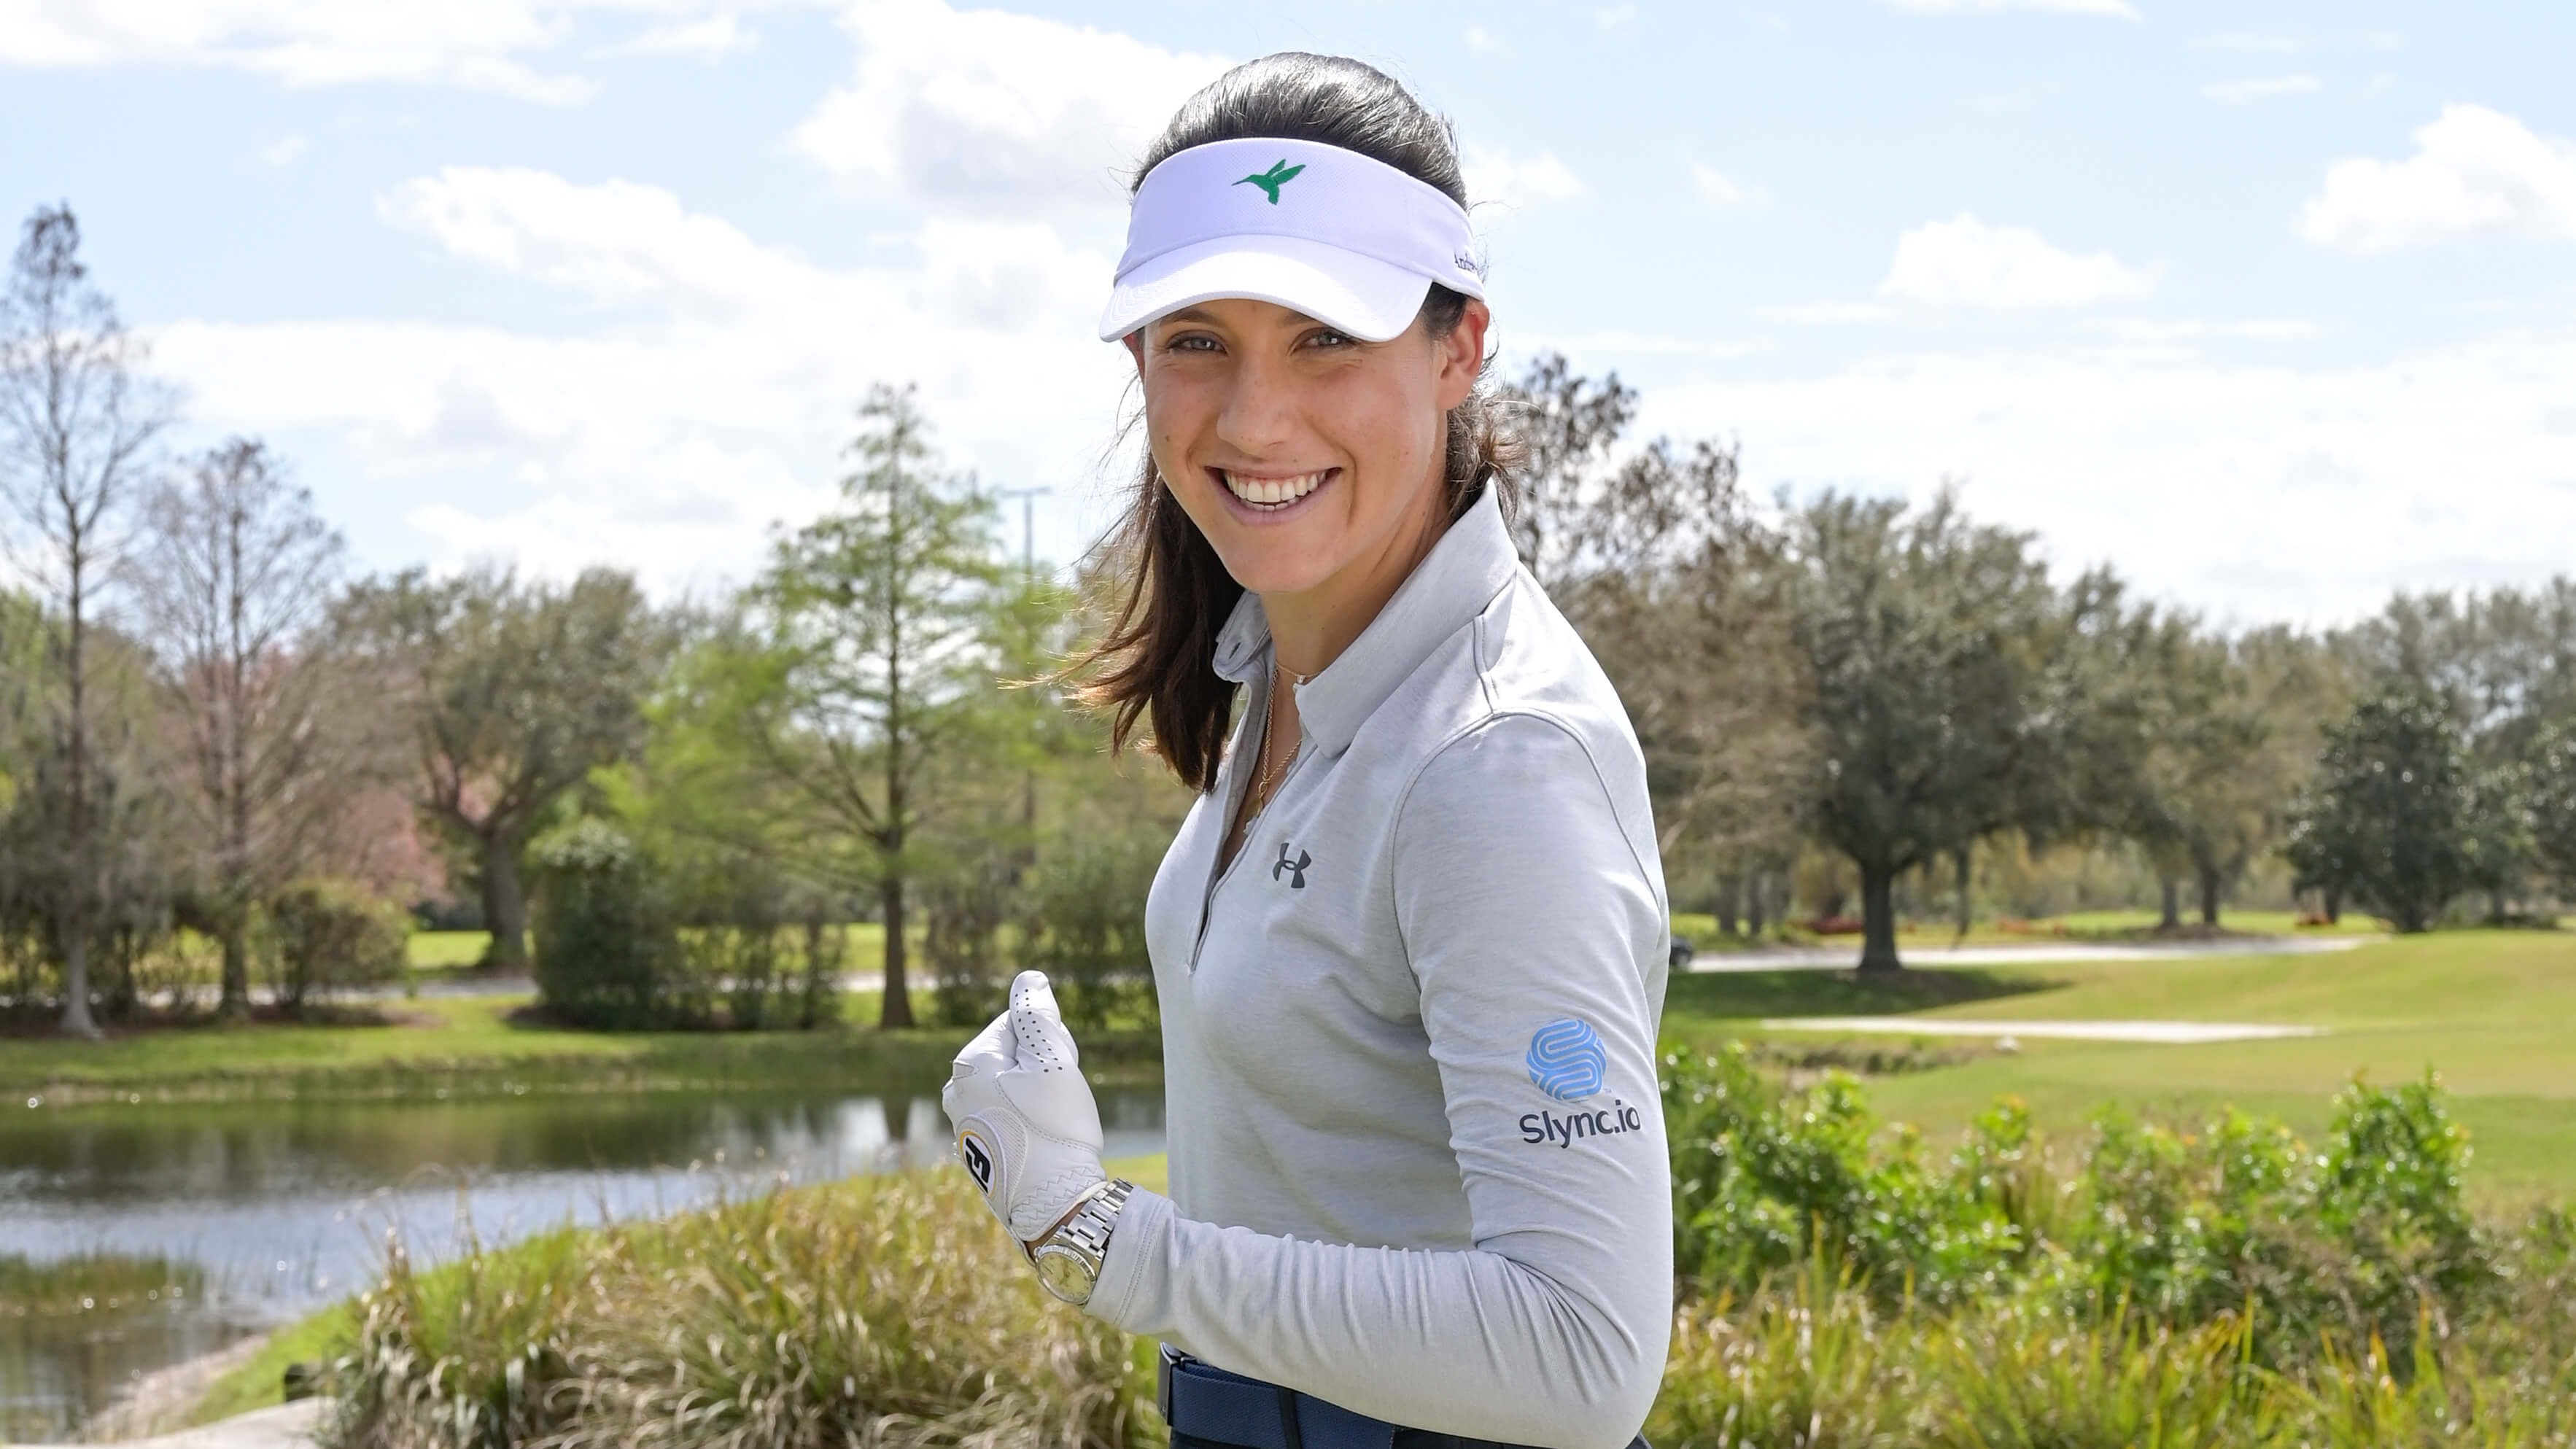 Born in New York City, and raised in Mexico City and Geneva, Albane Valenzuela is one of the rising global stars of women's golf. Her decorated amateur career includes runner-up performances at the 2017 and 2019 U.S. Women's Amateur Championships as well as qualifying for the 2016 and 2020 Olympic Games where she represented Team Switzerland. Albane earned her LPGA Tour card for the 2020-21 season and since her debut has earned one Top 10 finish at the 2021 LPGA Drive On Championship.